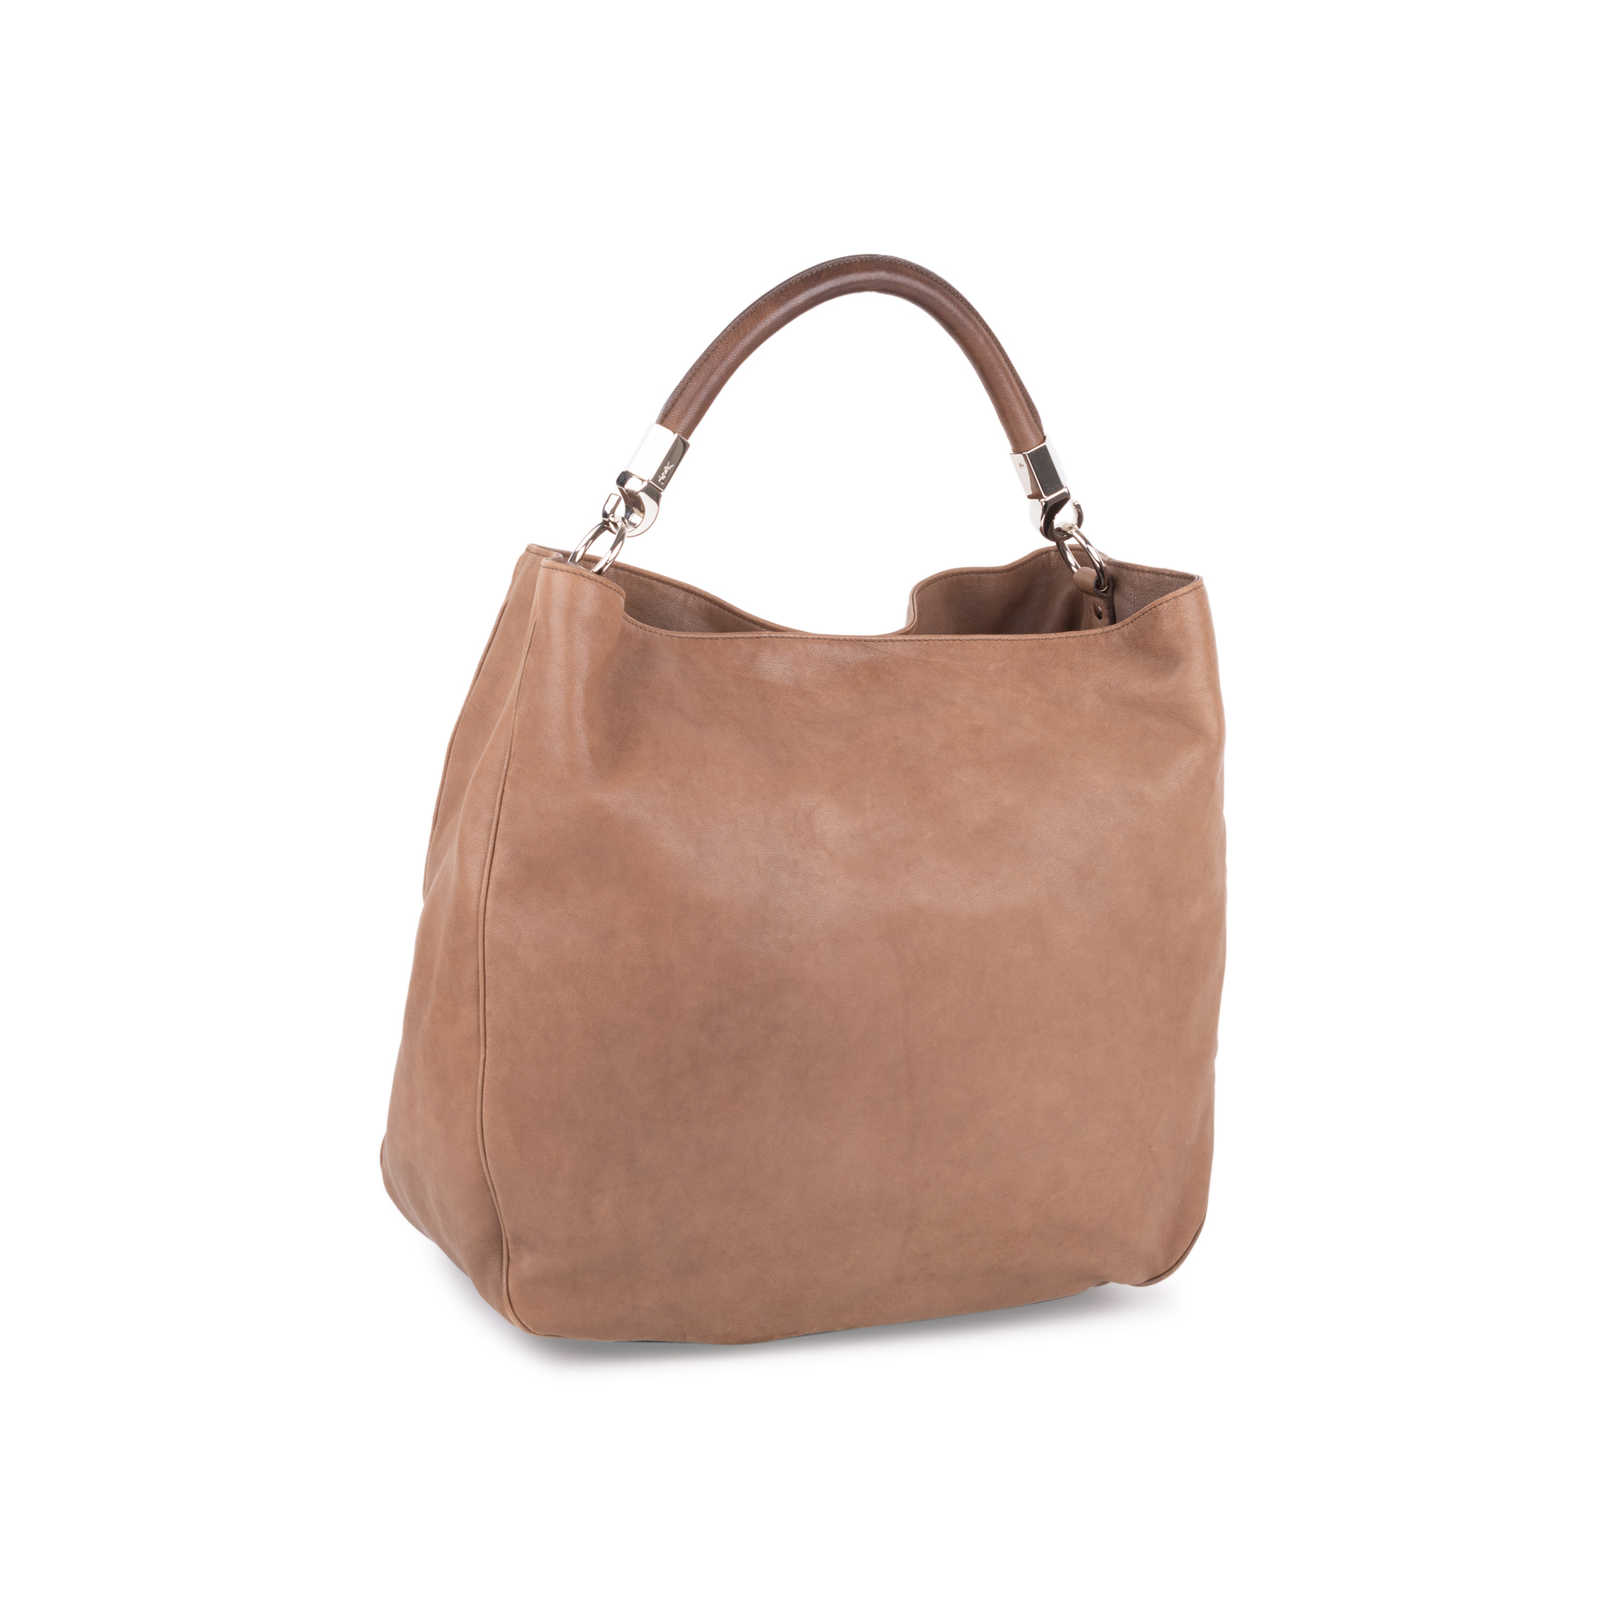 379ec5a5d17 ... Authentic Second Hand Yves Saint Laurent Roady Leather Hobo Bag  (PSS-585-00011 ...